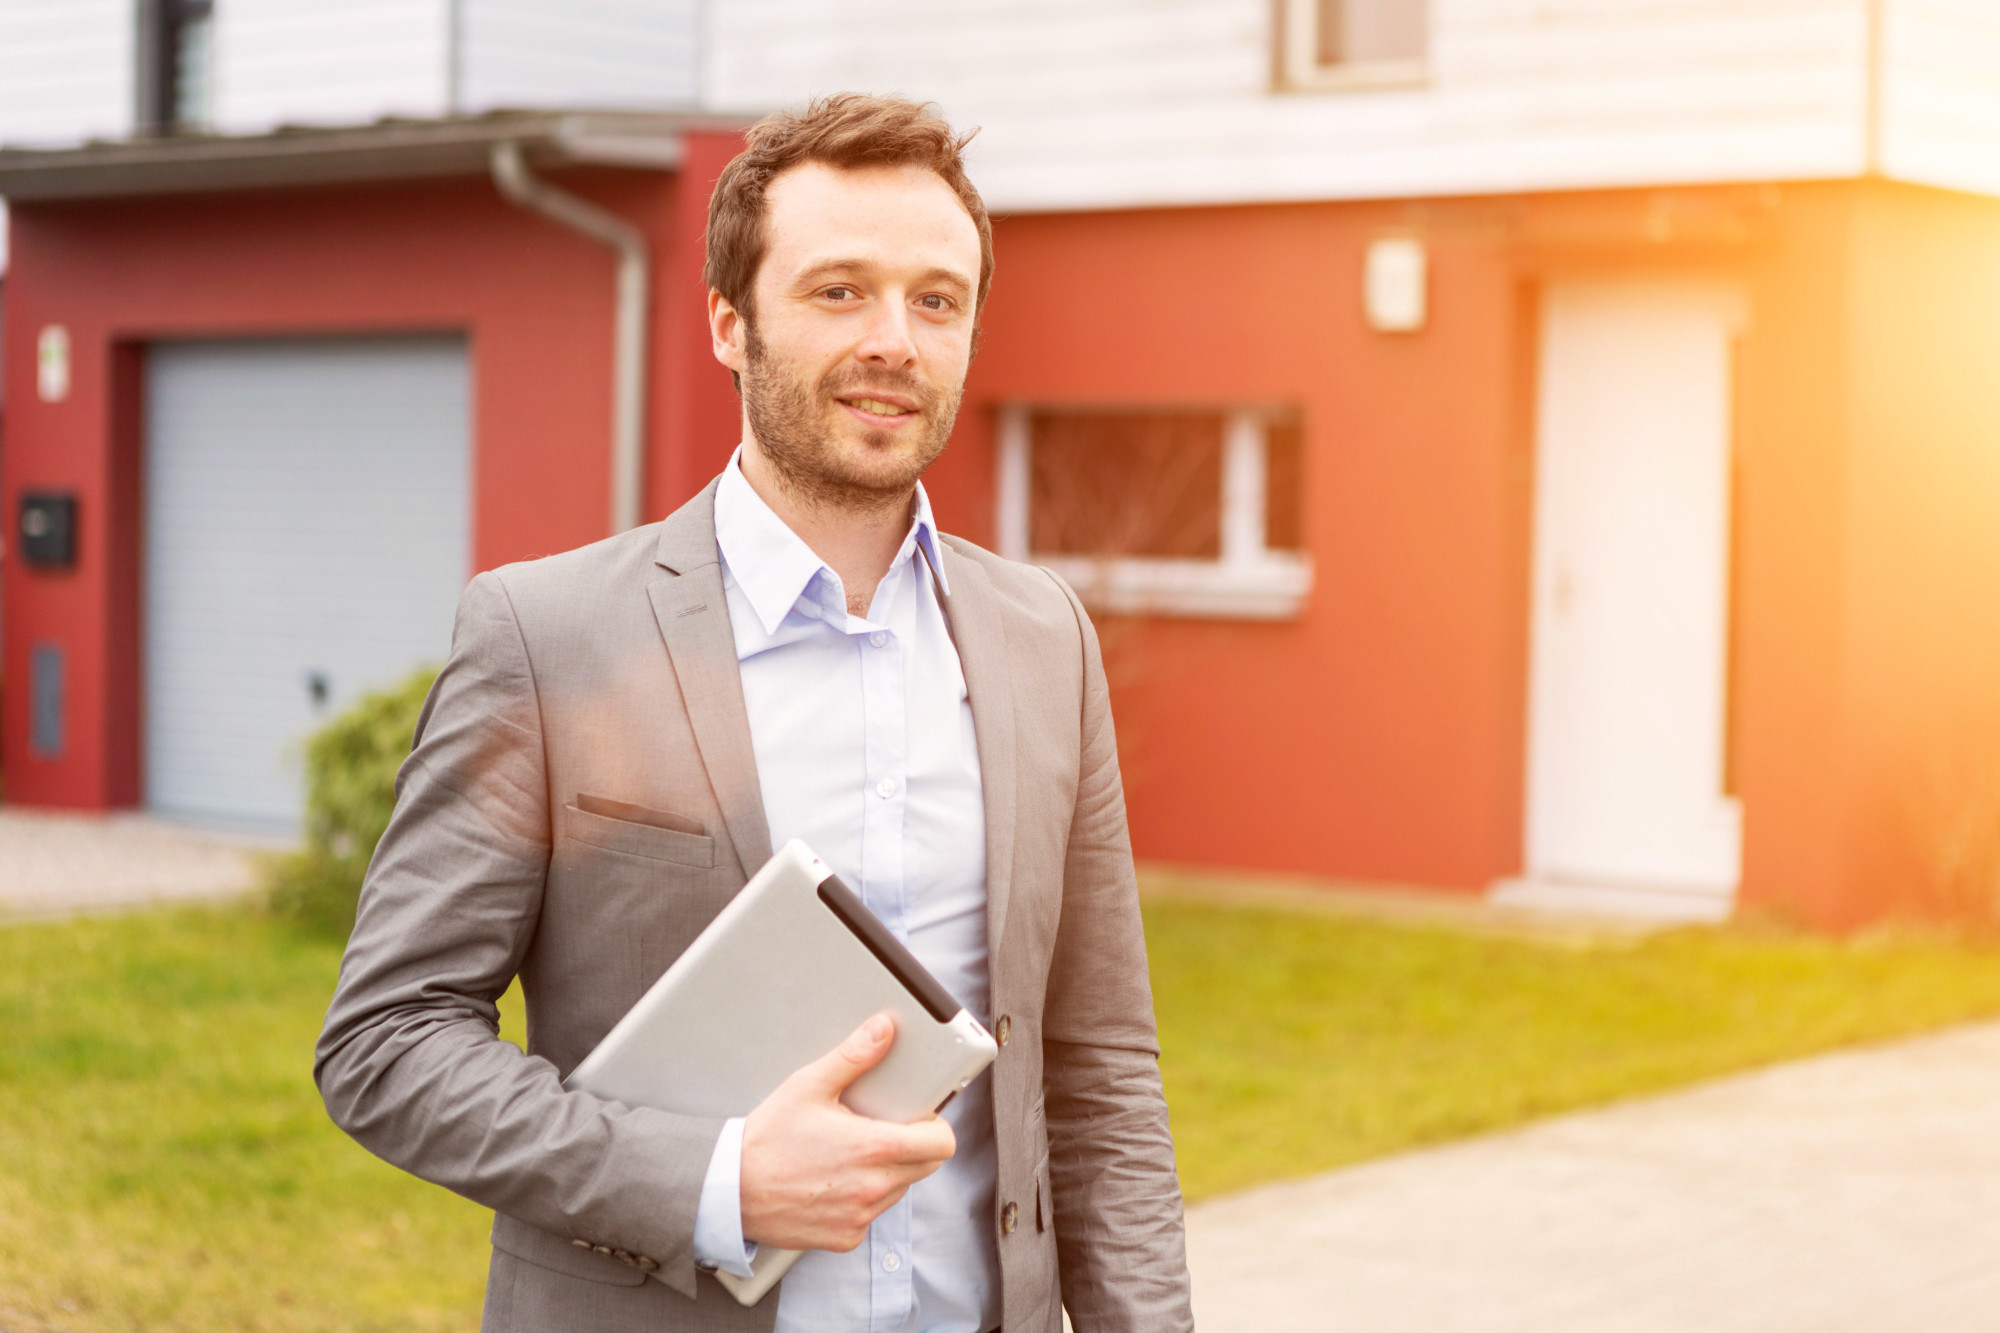 What Does a Realtor Do: Here's What Buyers and Sellers Can Expect